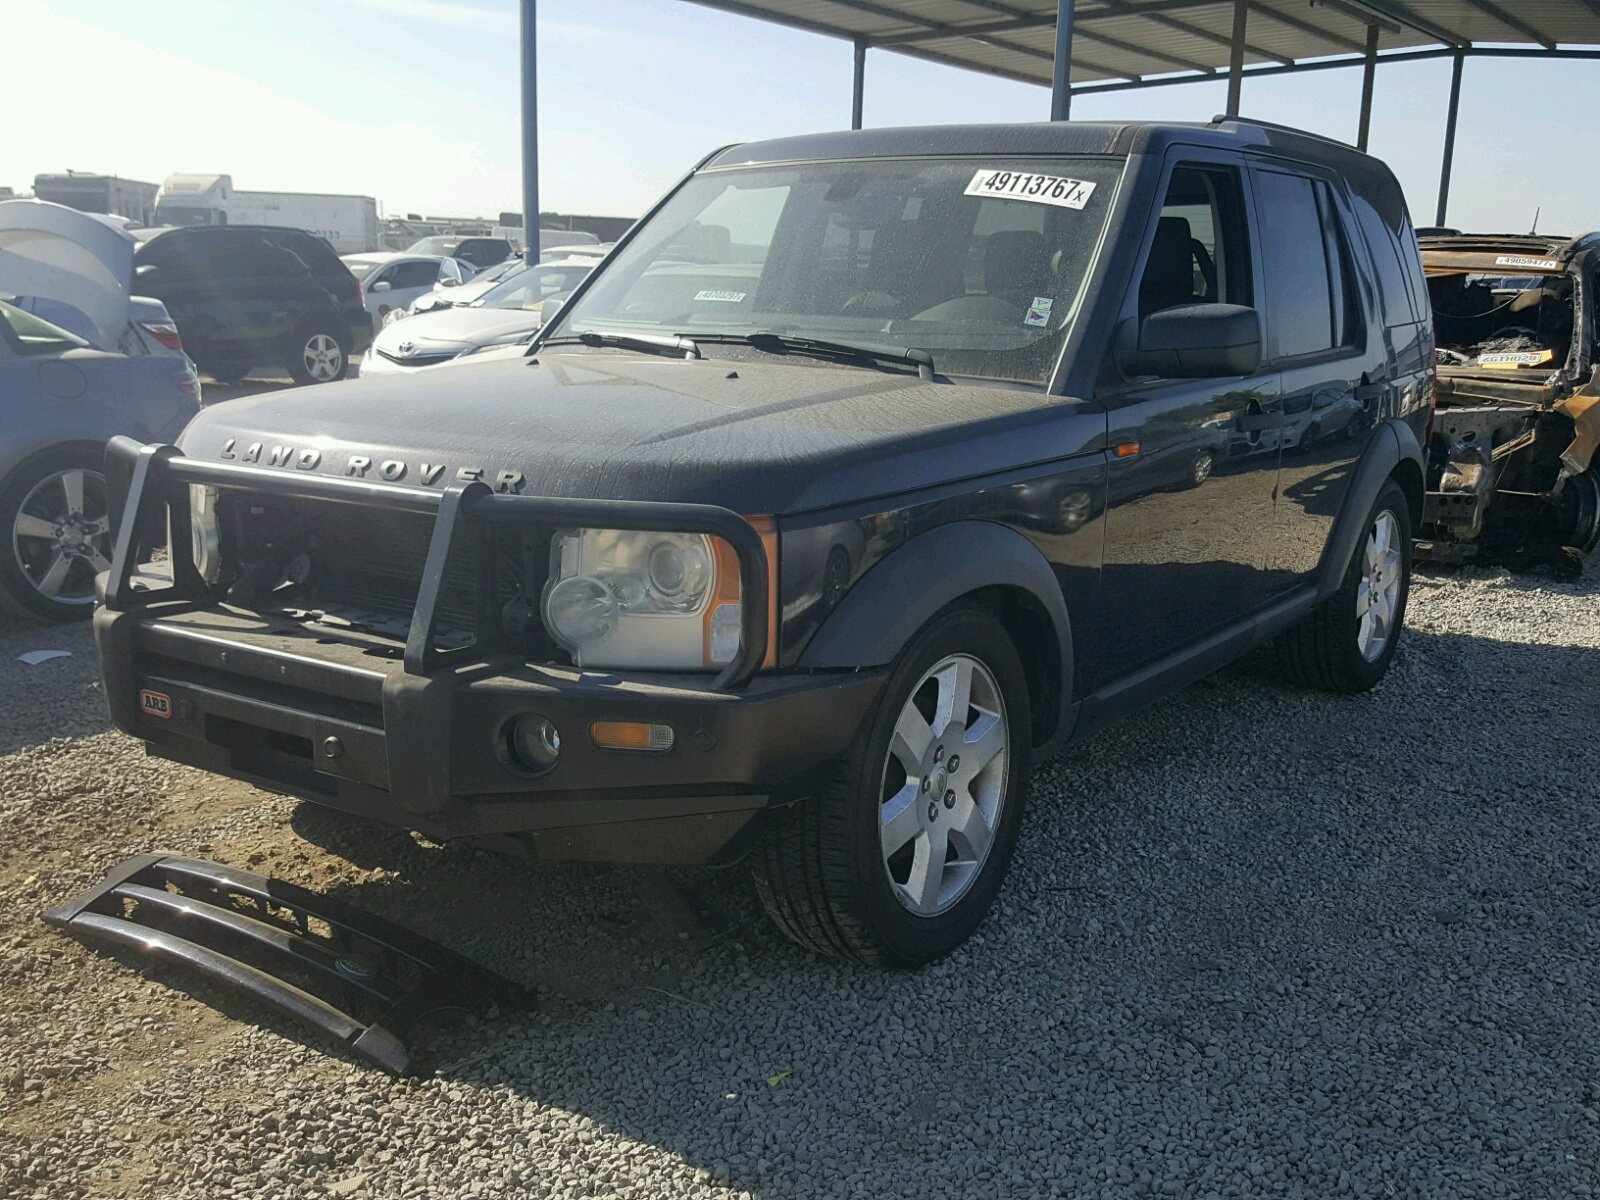 lot sale landrover land rover ma copart hse cars north billerica for at